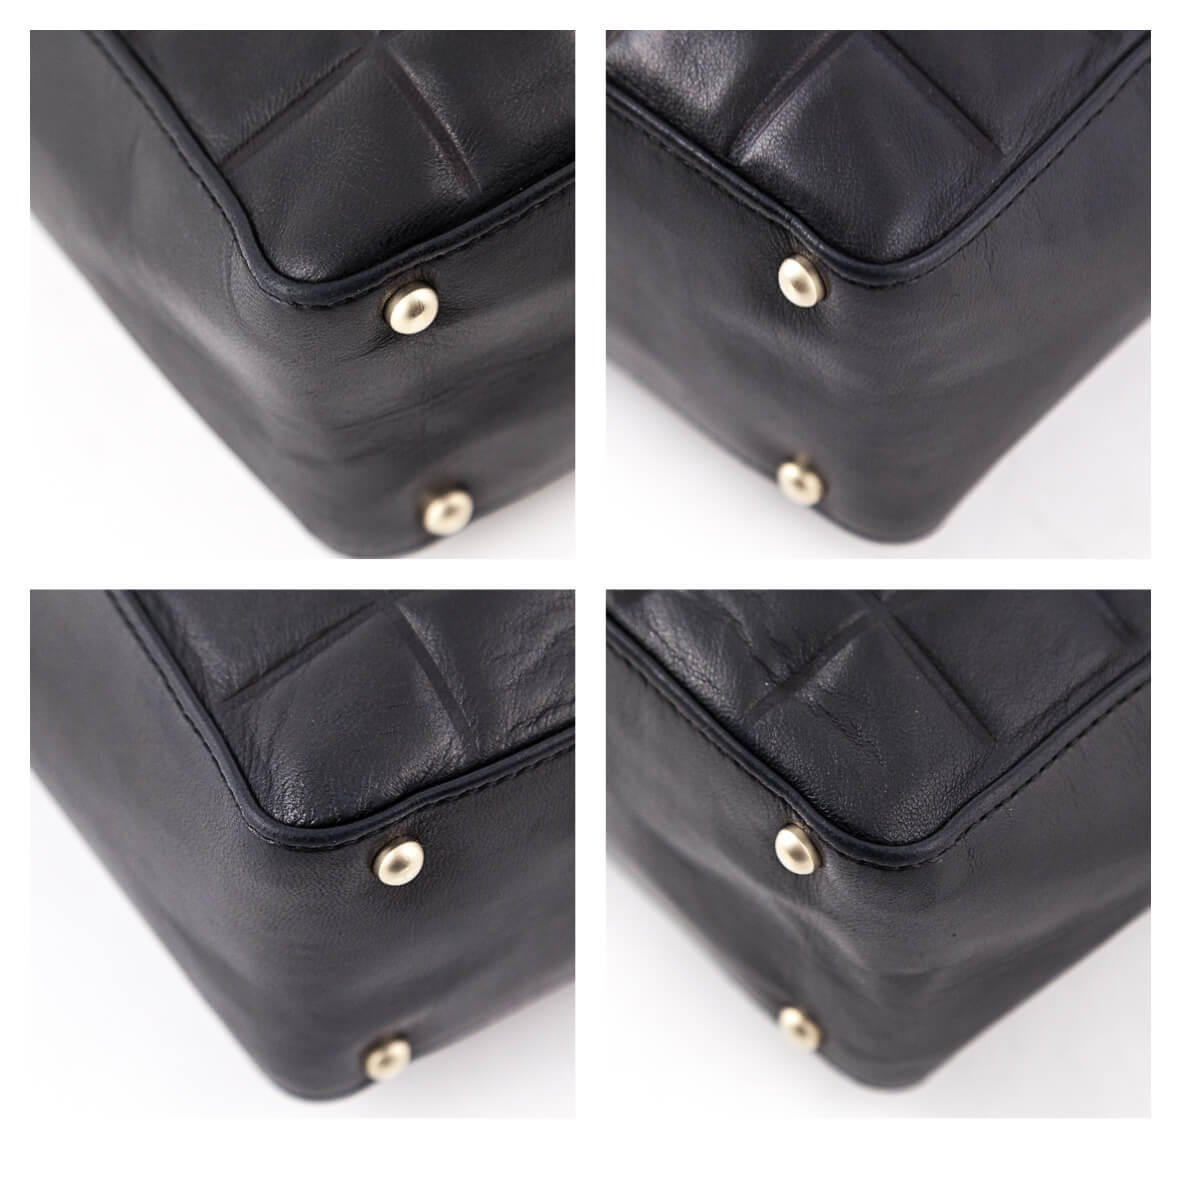 4c9286a4960149 ... Chanel Black Lambskin CC Chocolate Bar Square Shoulder Bag - LOVE that  BAG - Preowned Authentic ...